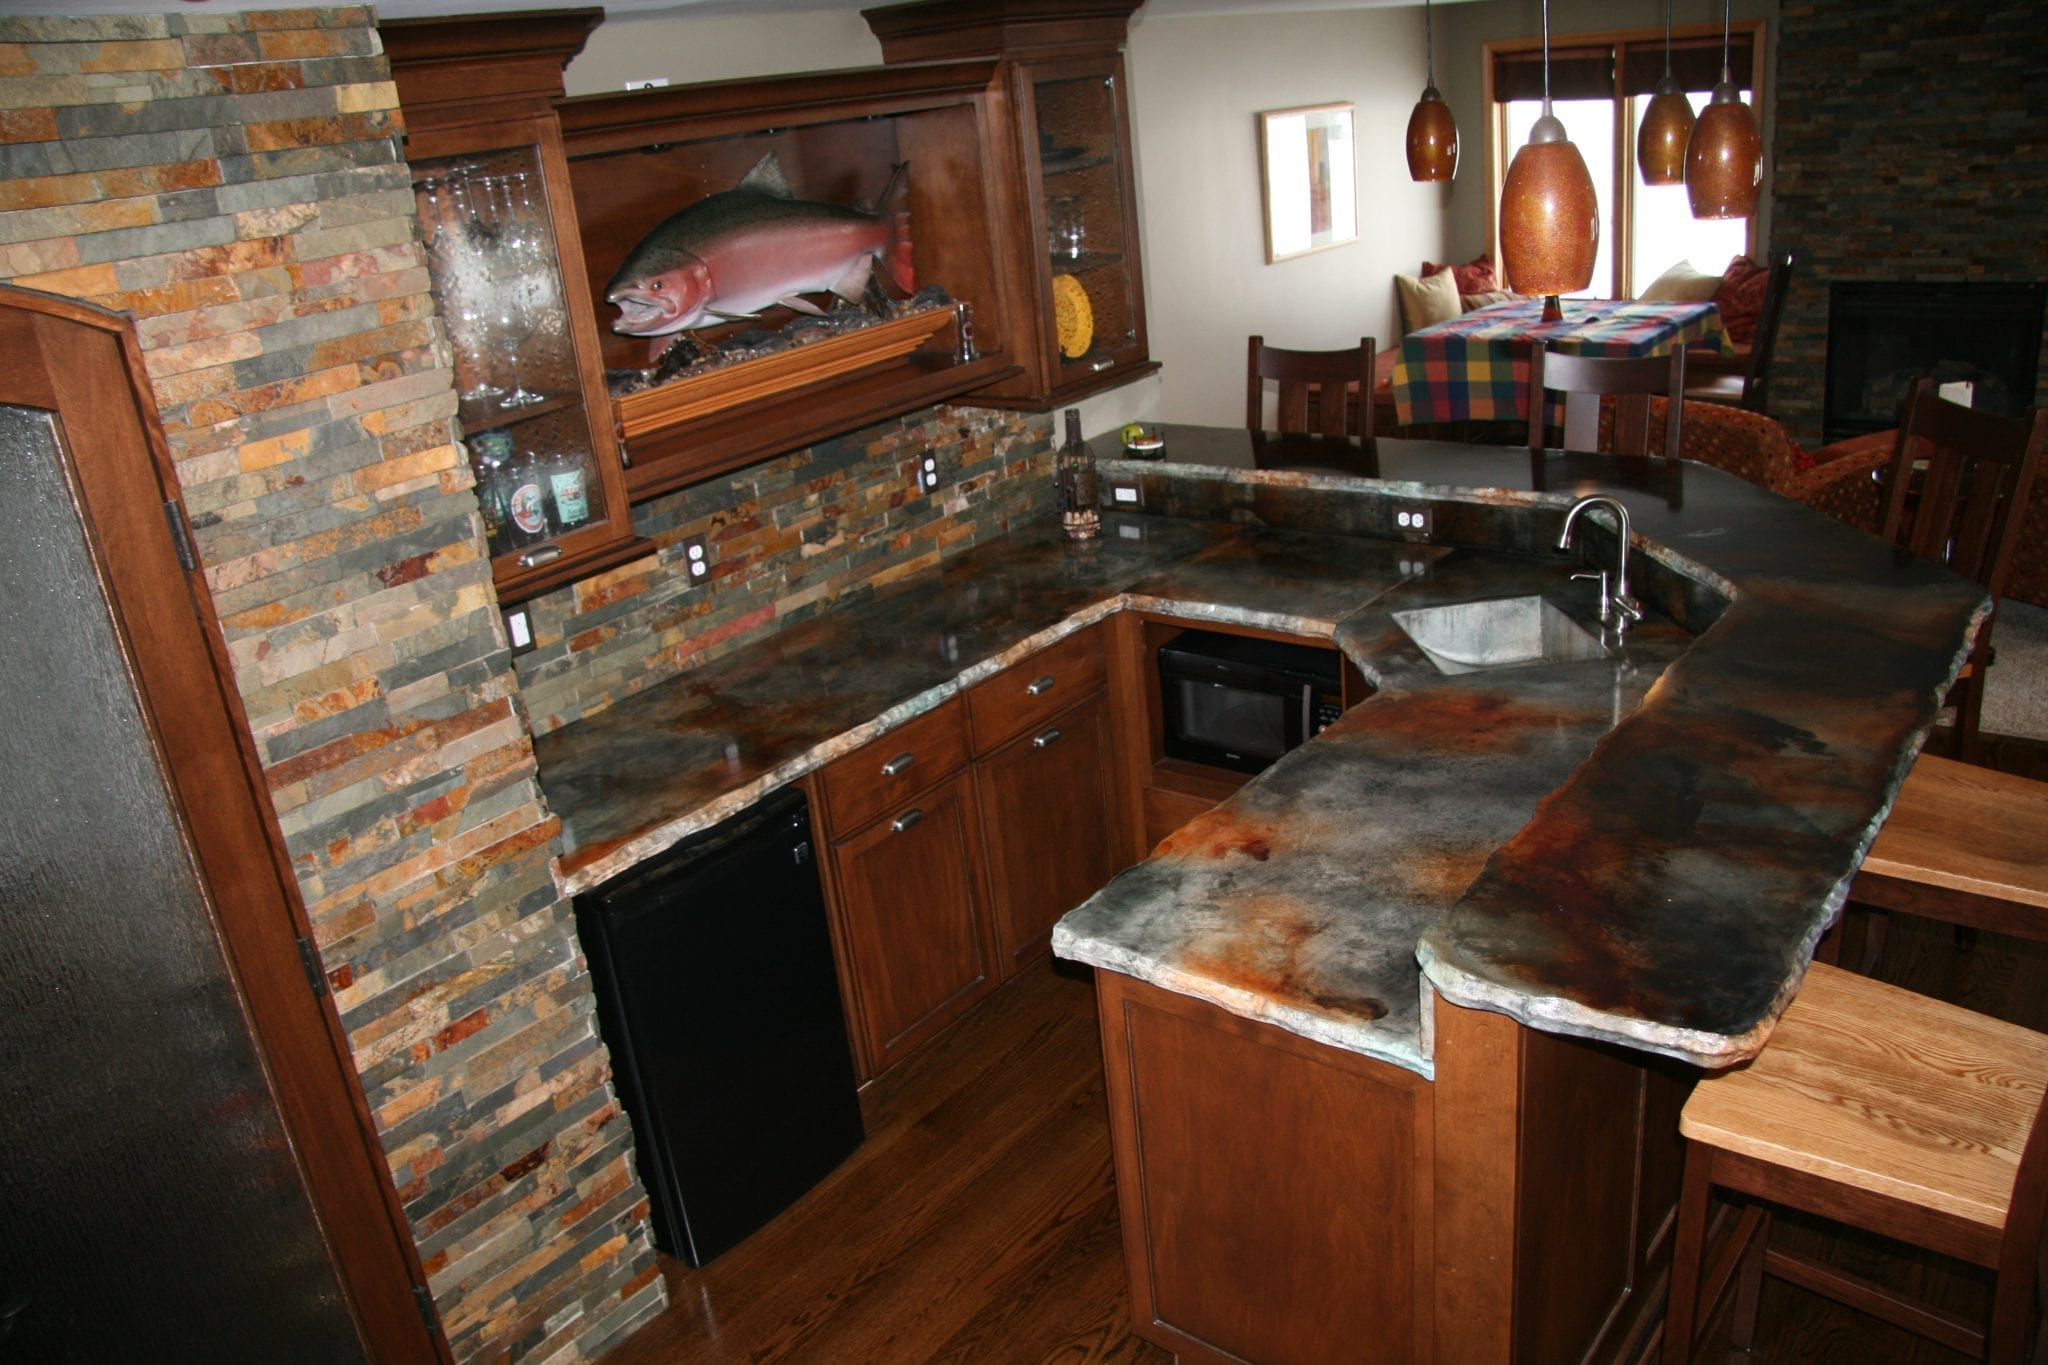 How Much For Concrete Countertops How To Stain A Concrete Counter Top Using Eco Stain